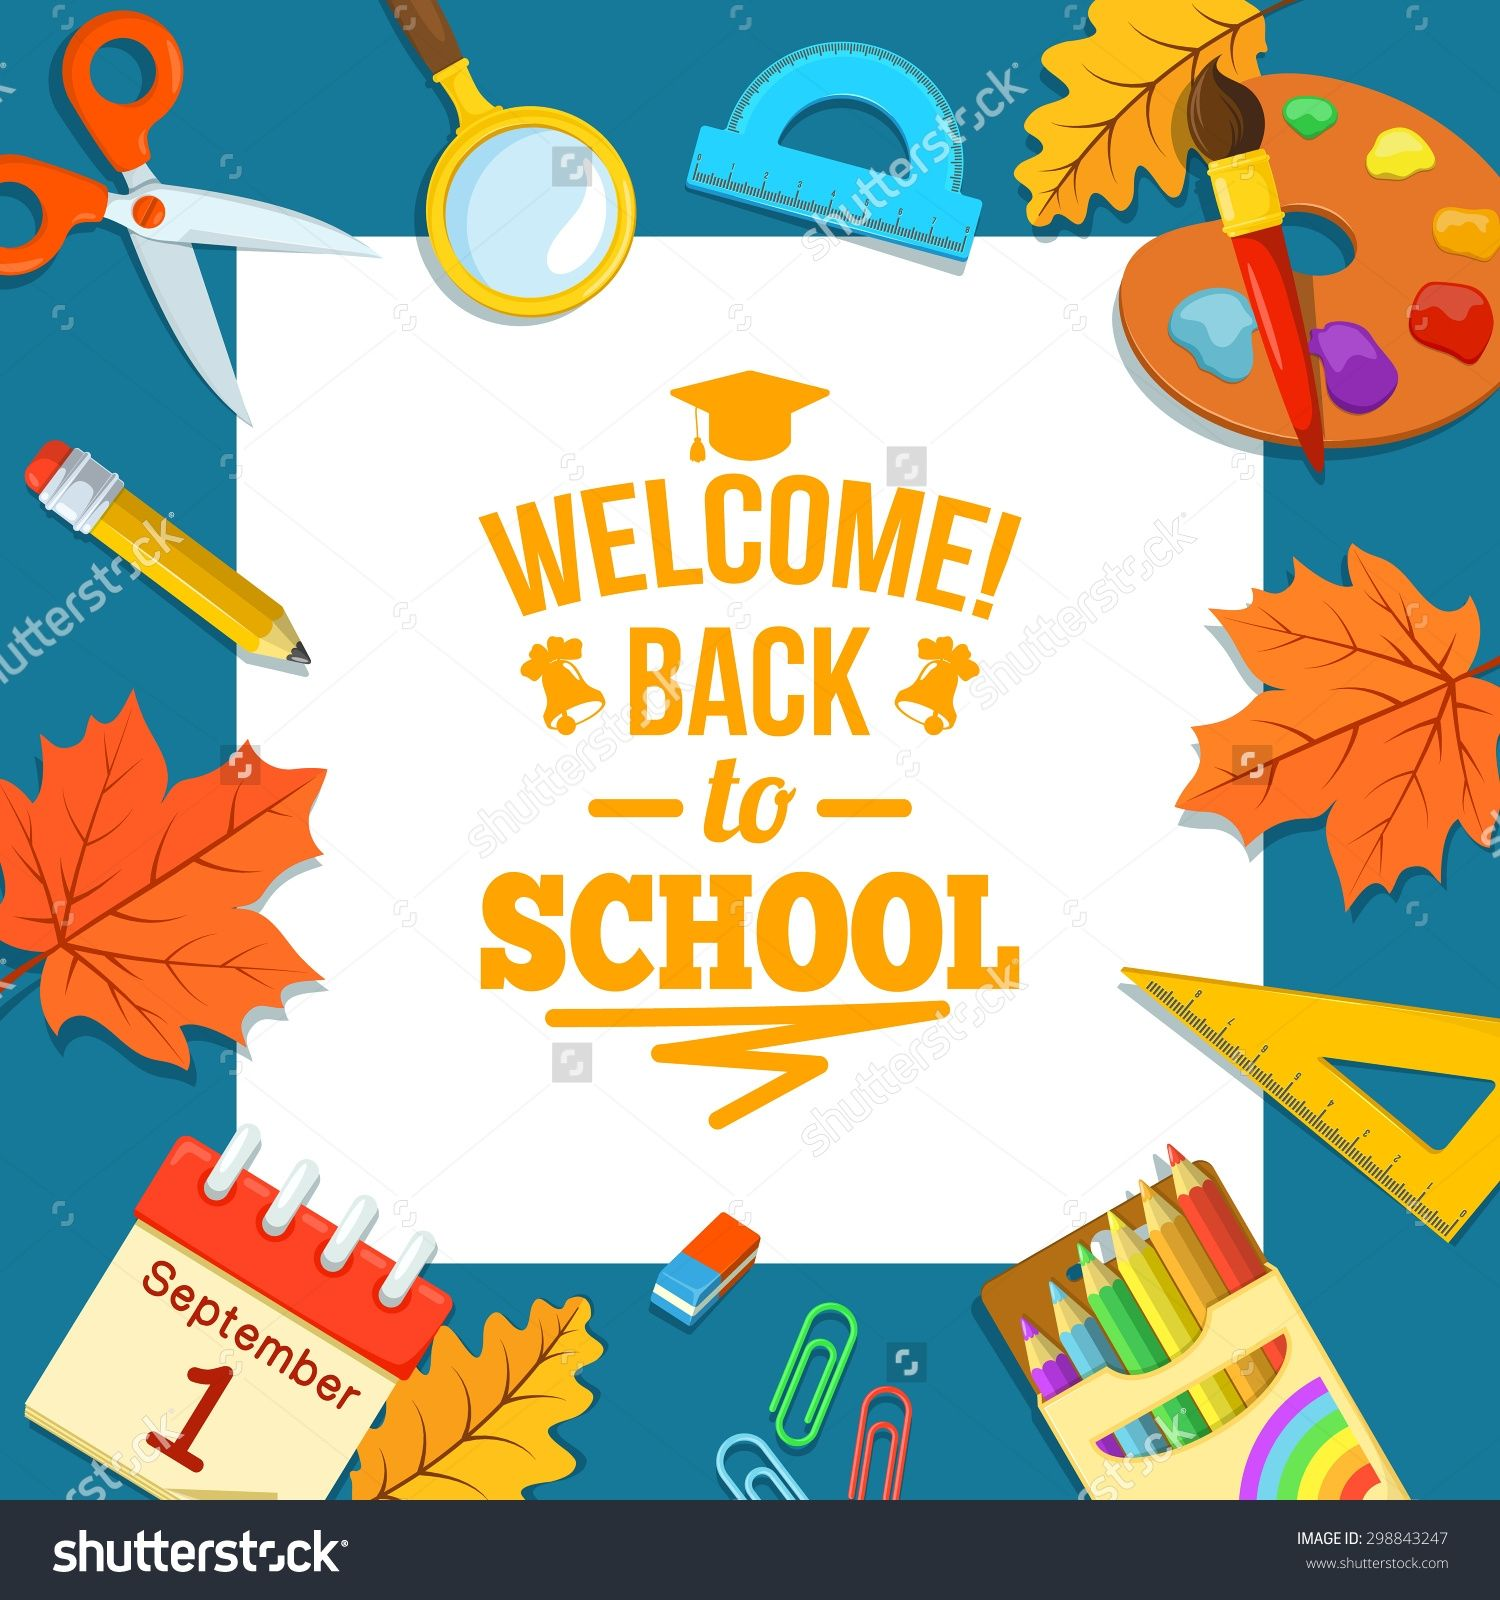 Free background design about school download new background design free background design about school download new background design about school download free background design voltagebd Gallery